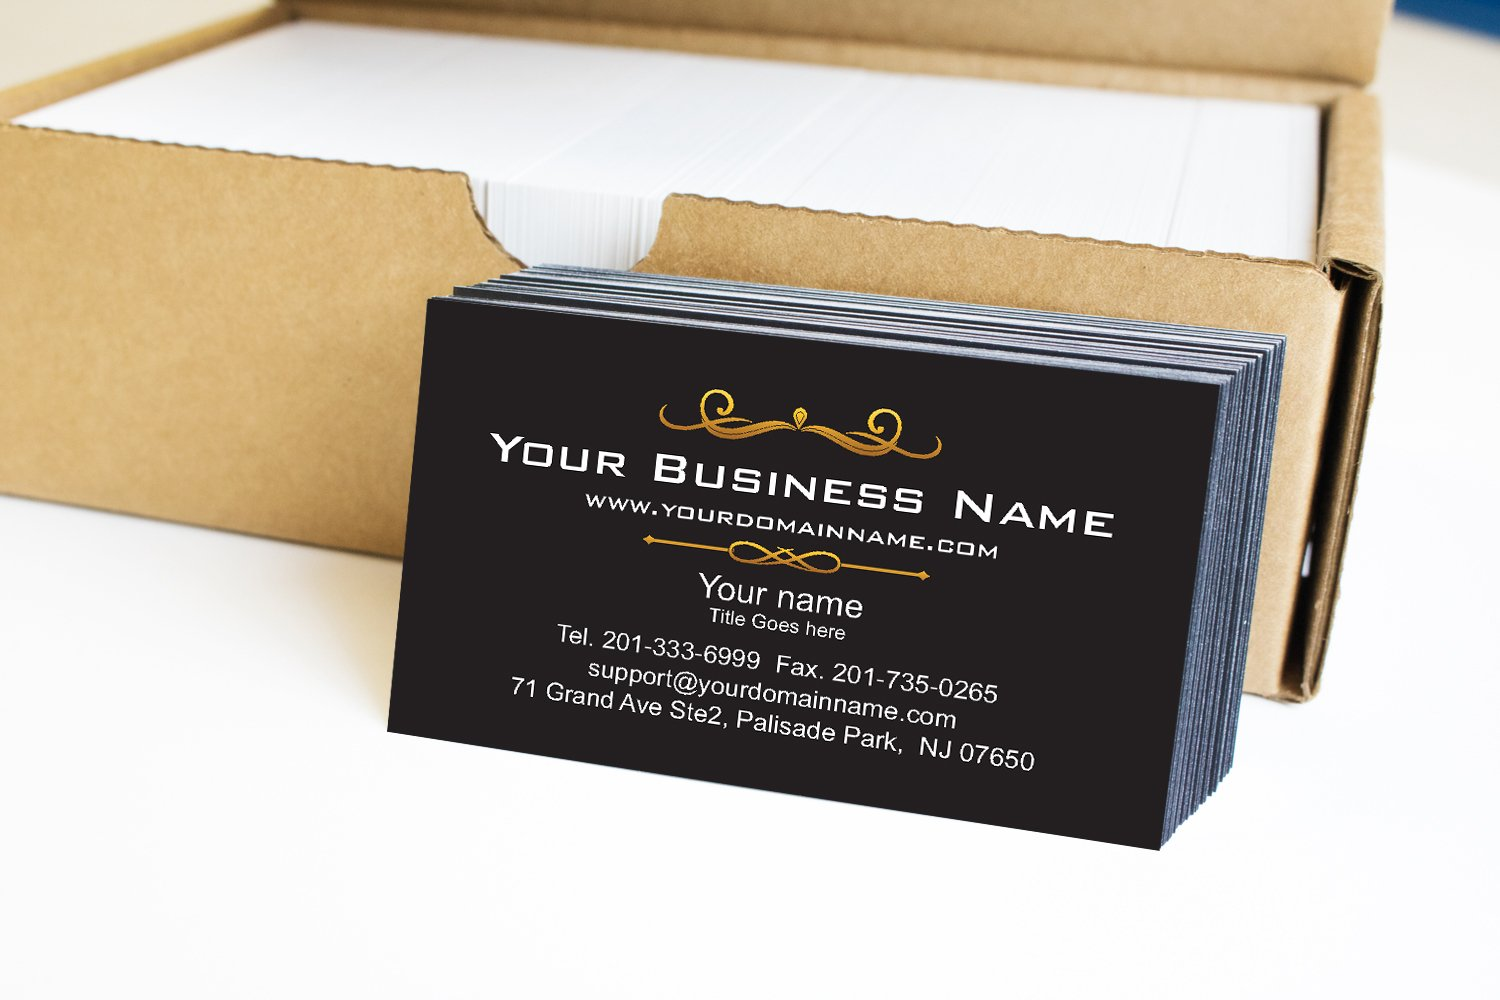 Simple Premium Business Cards 500 Full color - Black front-White back (129 lbs. 350gsm-Thick paper)